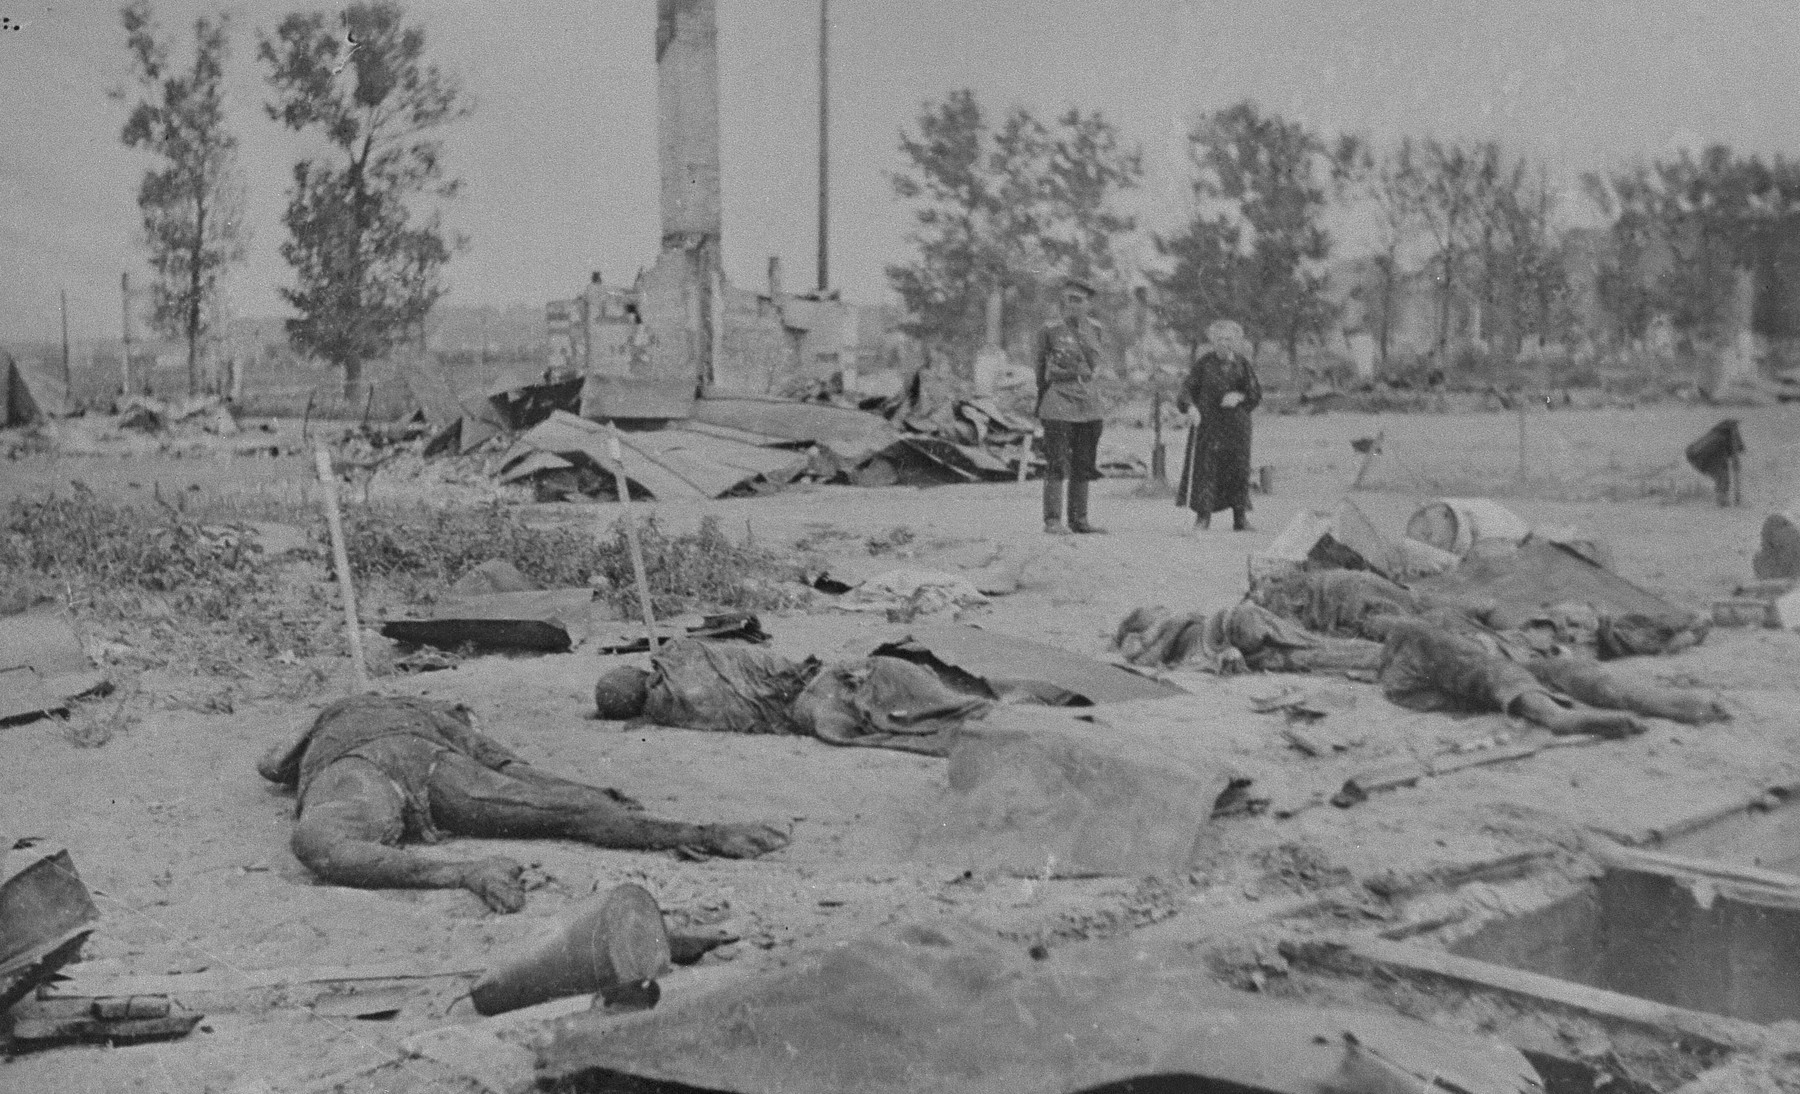 A Russian officer and an elderly woman view the devastation that resulted from the razing of the Kovno ghetto.  Charred human remains are strewn among the rubble.